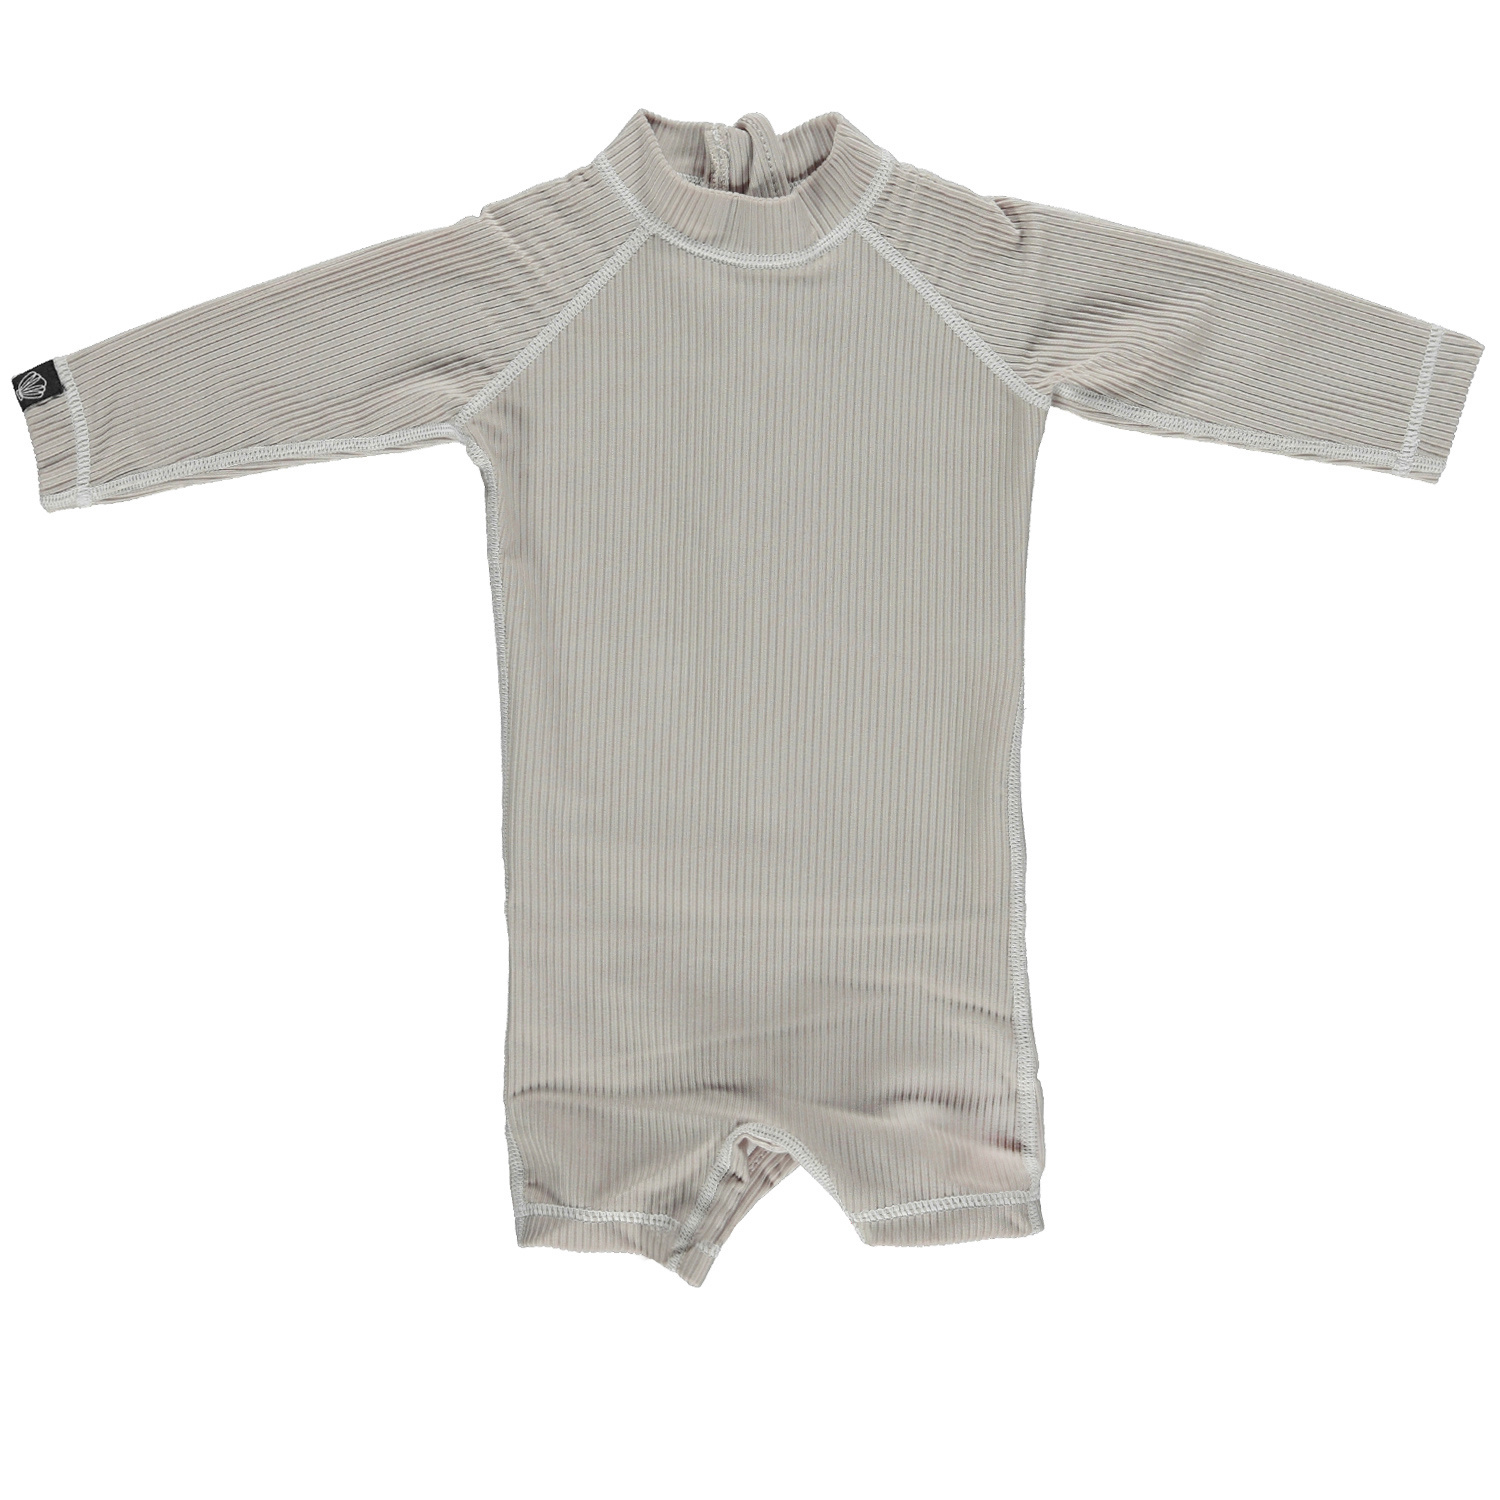 SAND RIBBED BABY-1